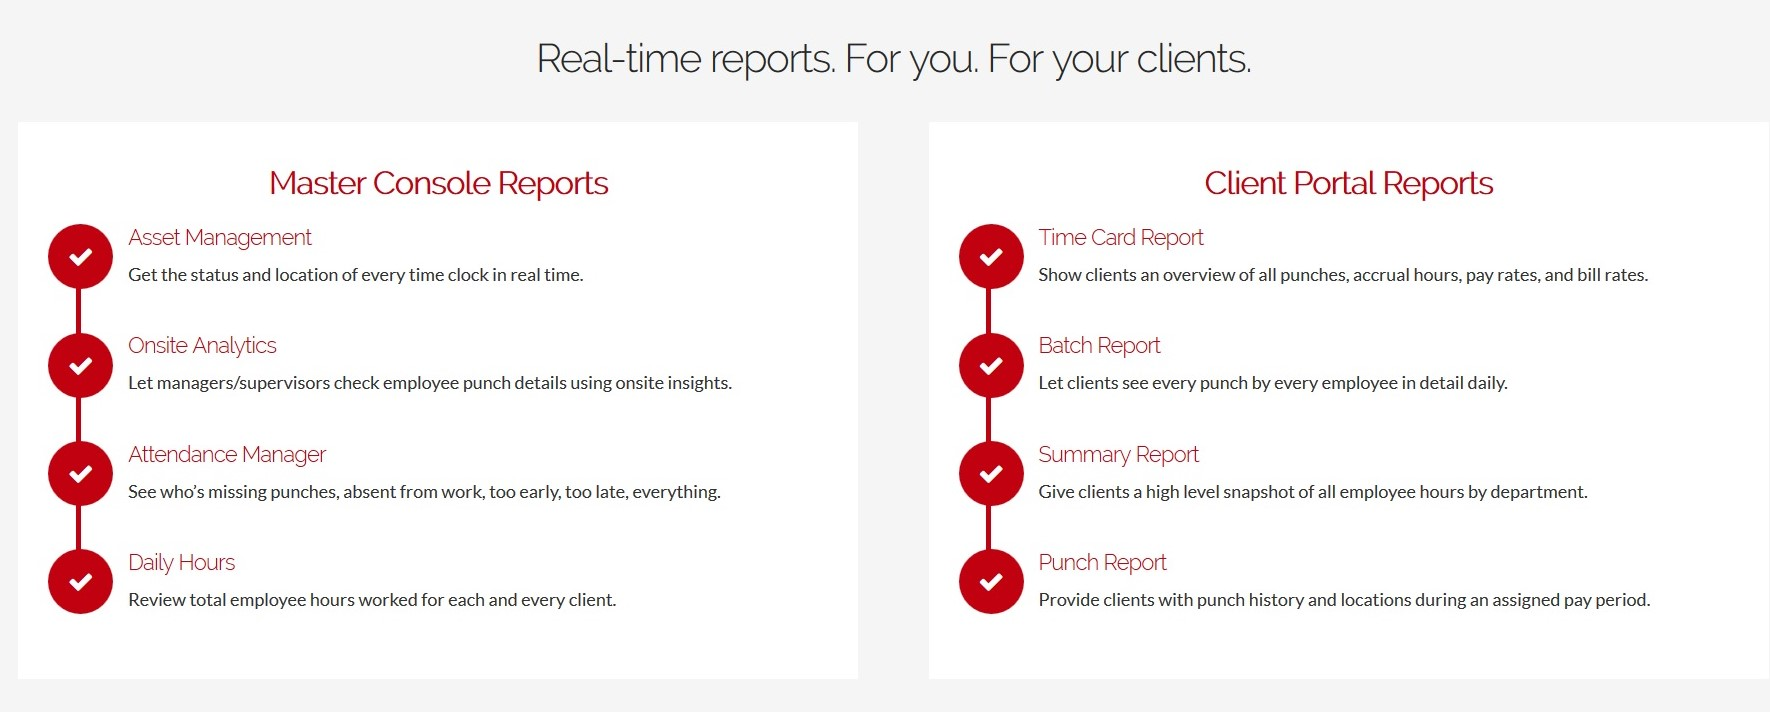 realtime-reports-2-.jpg